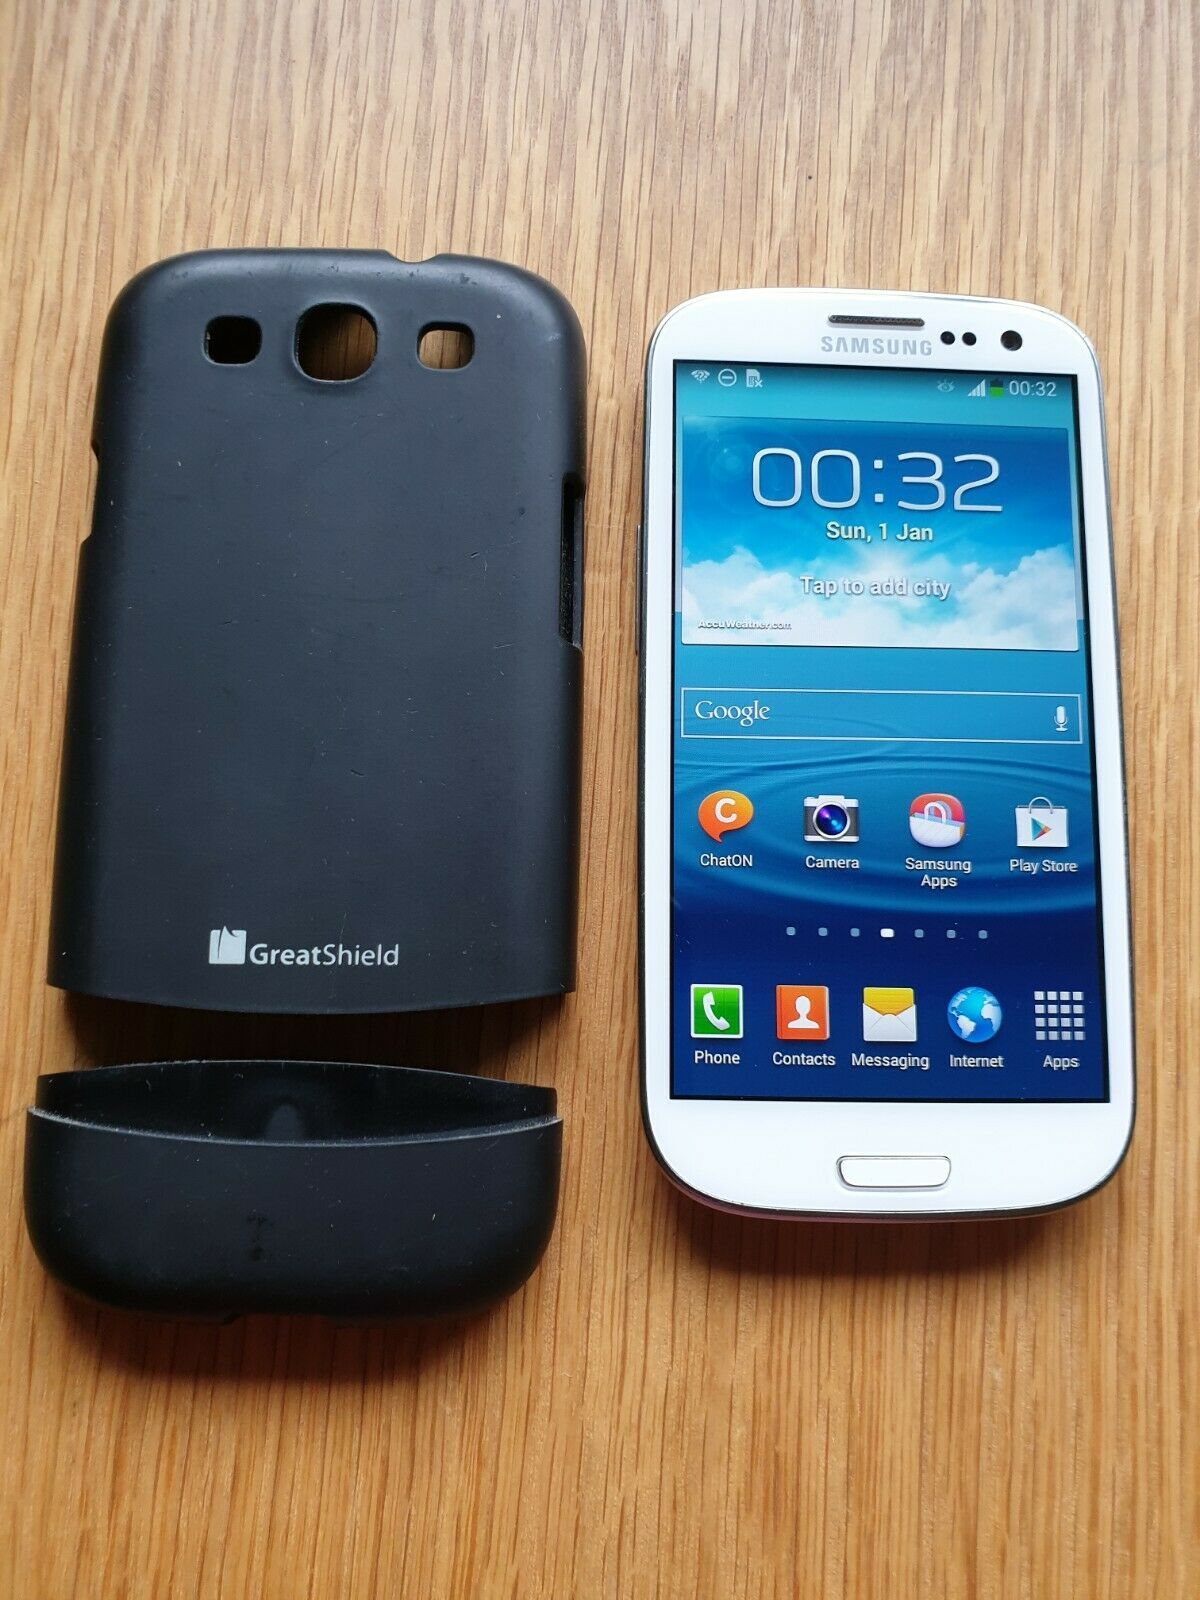 Android Phone - SAMSUNG GALAXY S3 MOBILE PHONE ANDROID SMARTPHONE WHITE